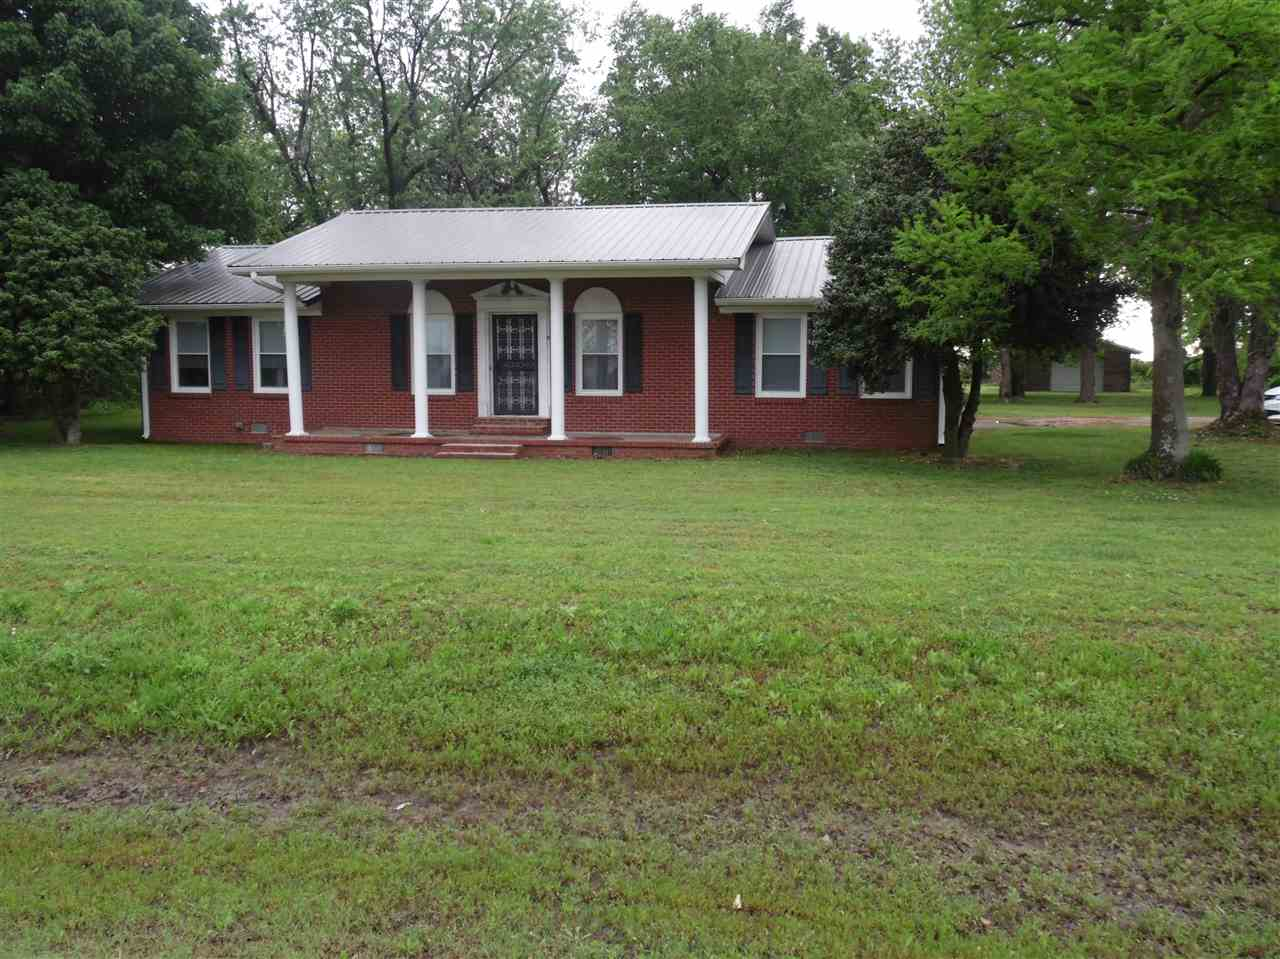 Newly renovated 1784 sq ft 2 bed, 2 bath home on HWY 18 in Monette on 1.5 acres with a 20x30 shop building with garage door. Appraised for $130000 over a year ago.   All renovations took place in 2017-2018: New windows, new metal roof, new HVAC, new gutters and soffit, new vinyl plank flooring and tile throughout except did not change carpet in kids room, new toilets, new sink in master, new vanity area with sink in master bedroom/closet area, all new lighting/ceiling fans inside and outside, p